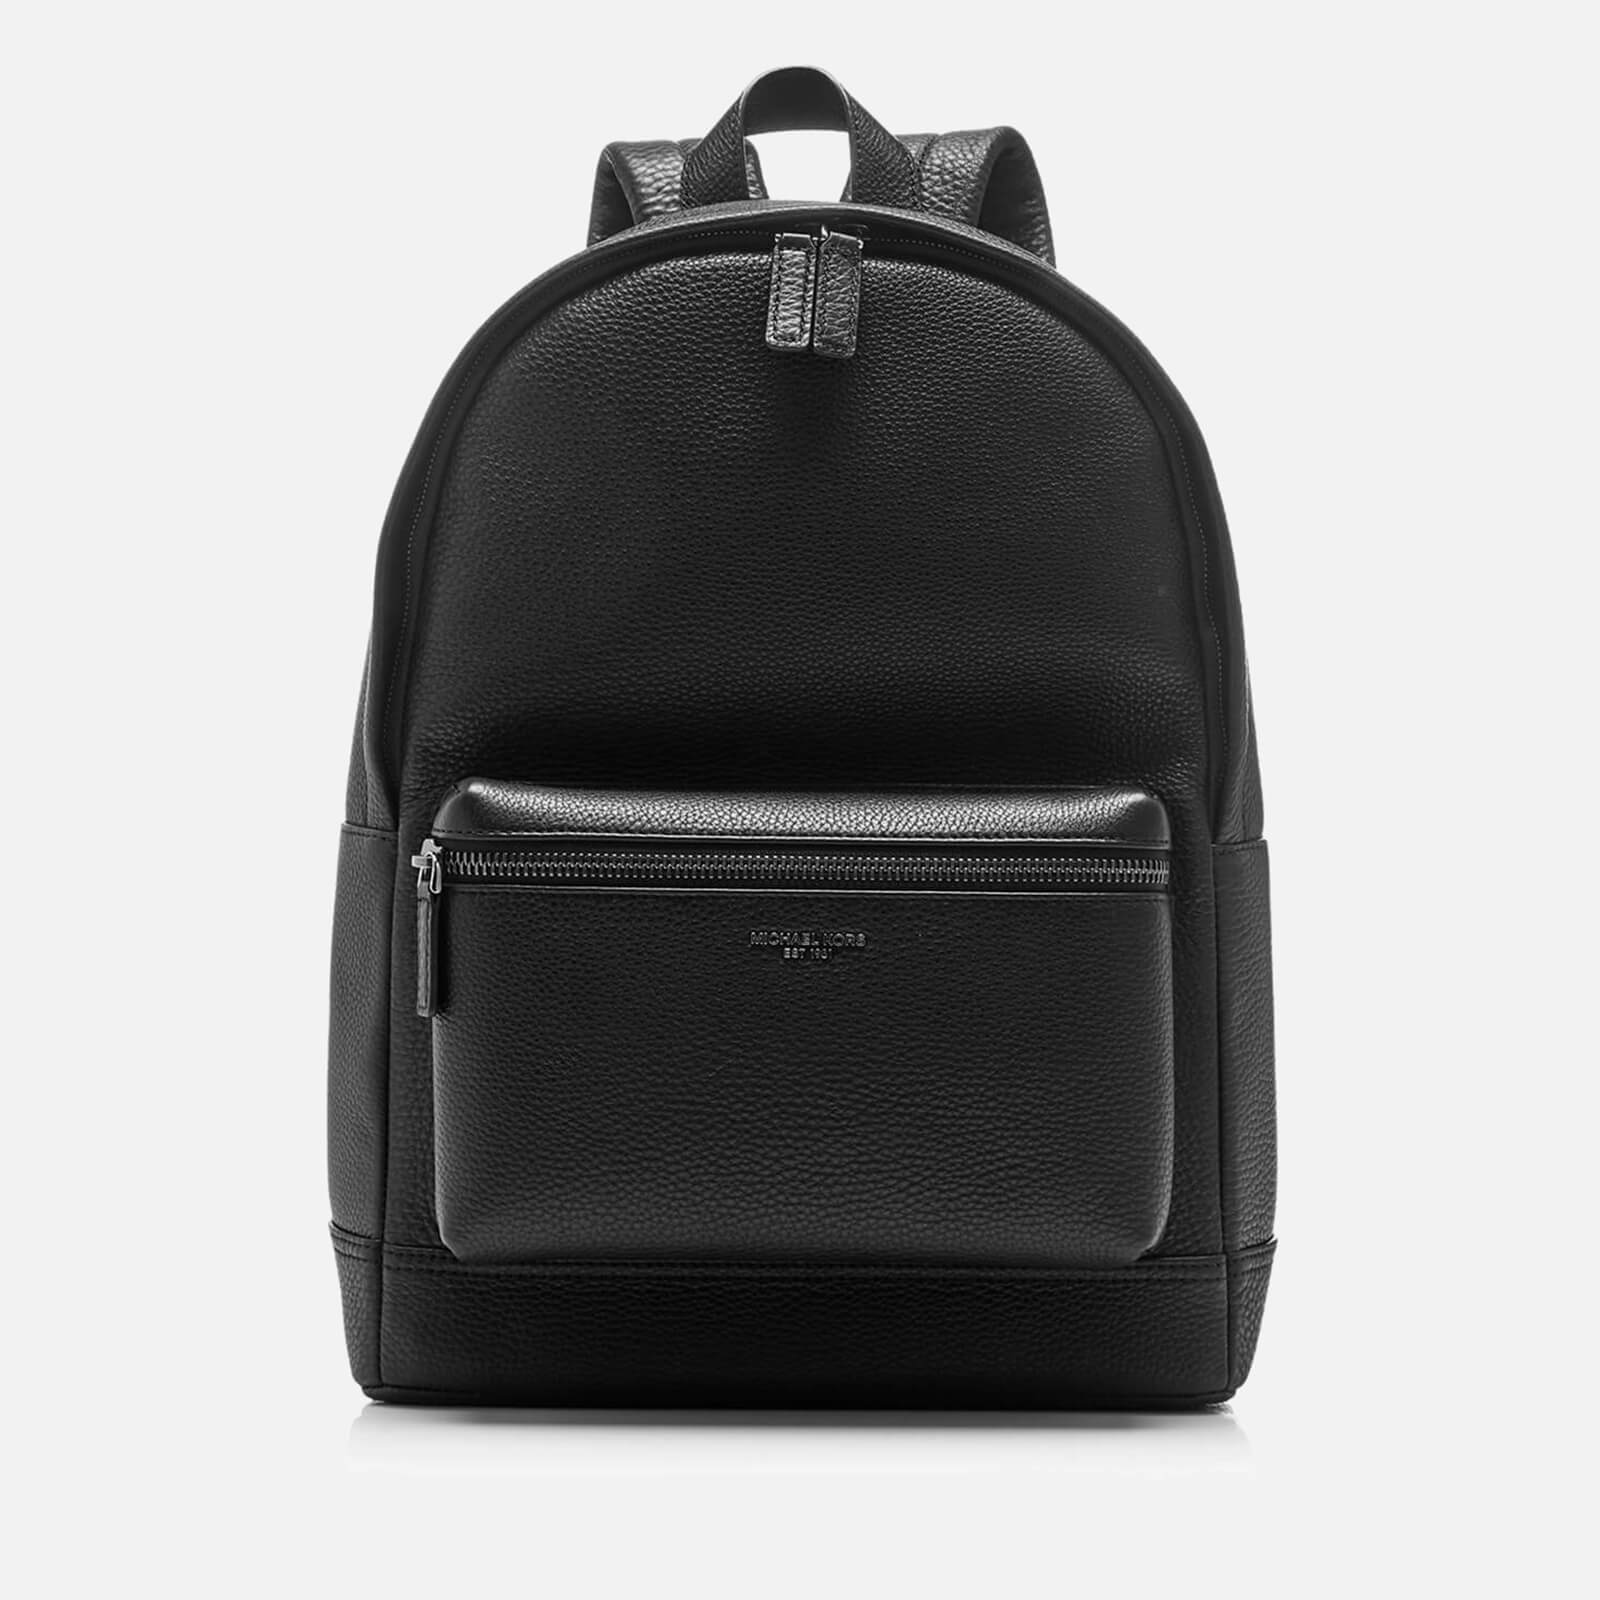 3c514a3b48f99 Michael Kors Men s Bryant Leather Backpack - Black - Free UK Delivery over  £50